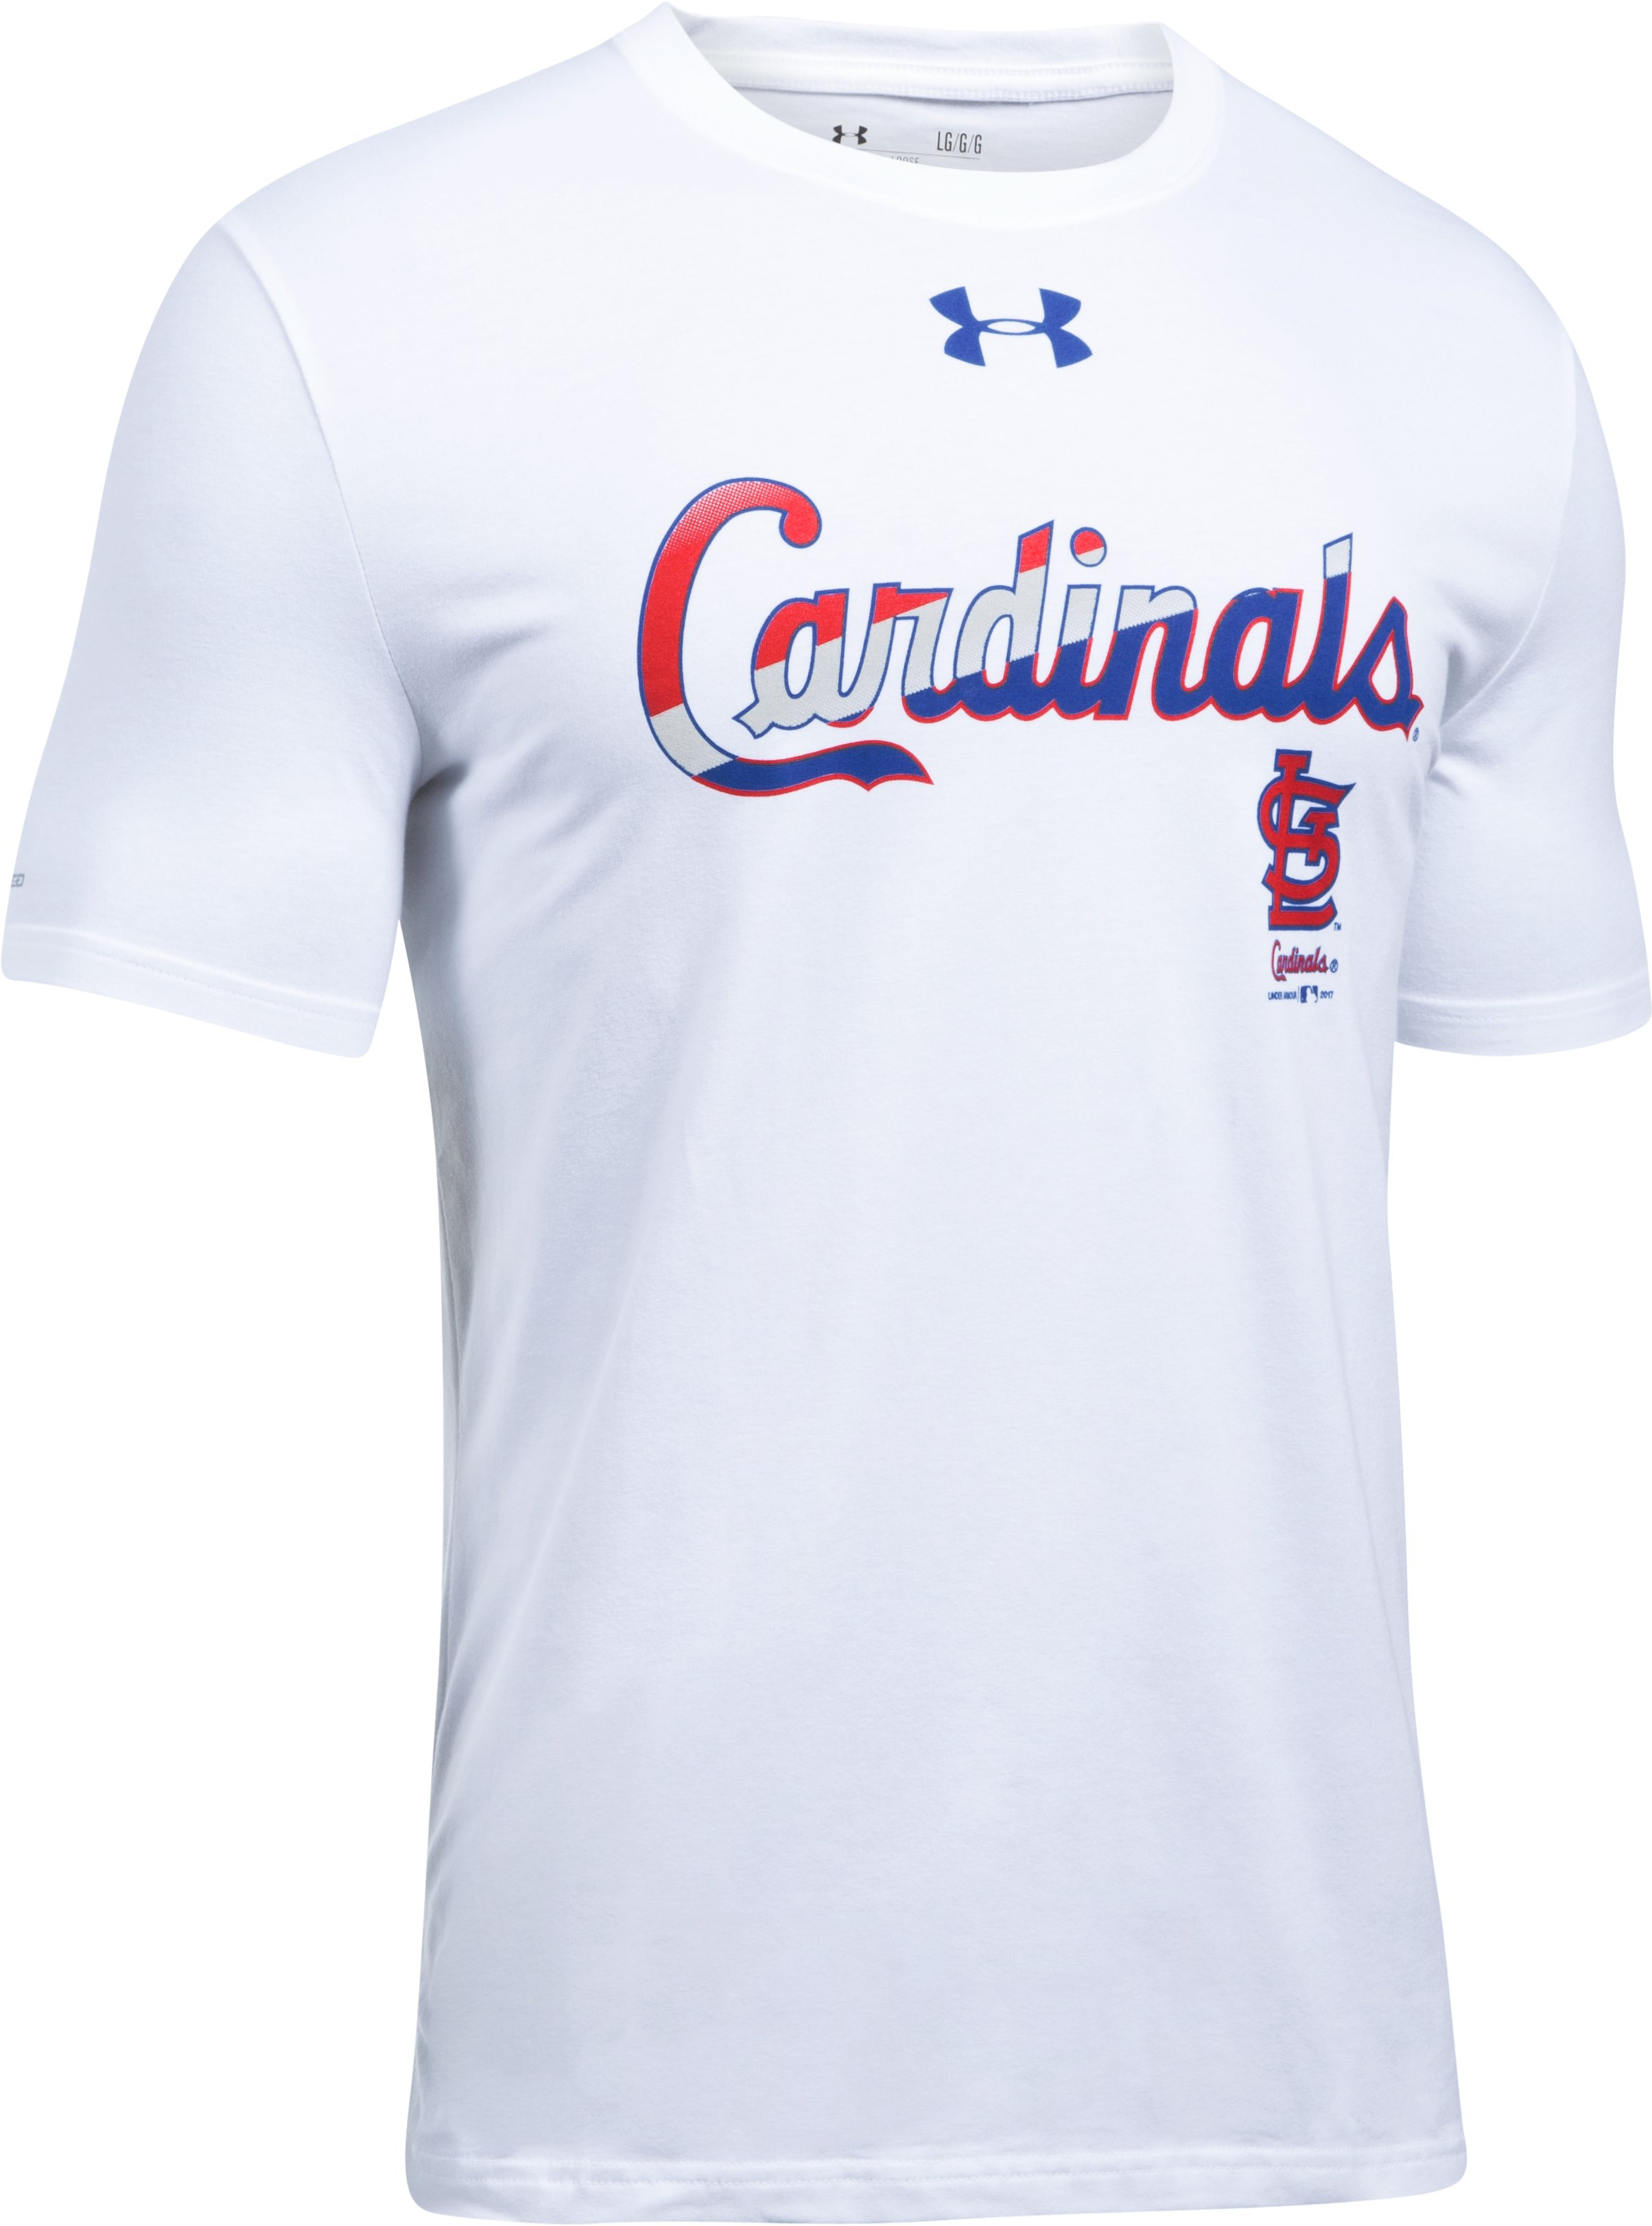 Men's St. Louis Cardinals T-Shirt, White,